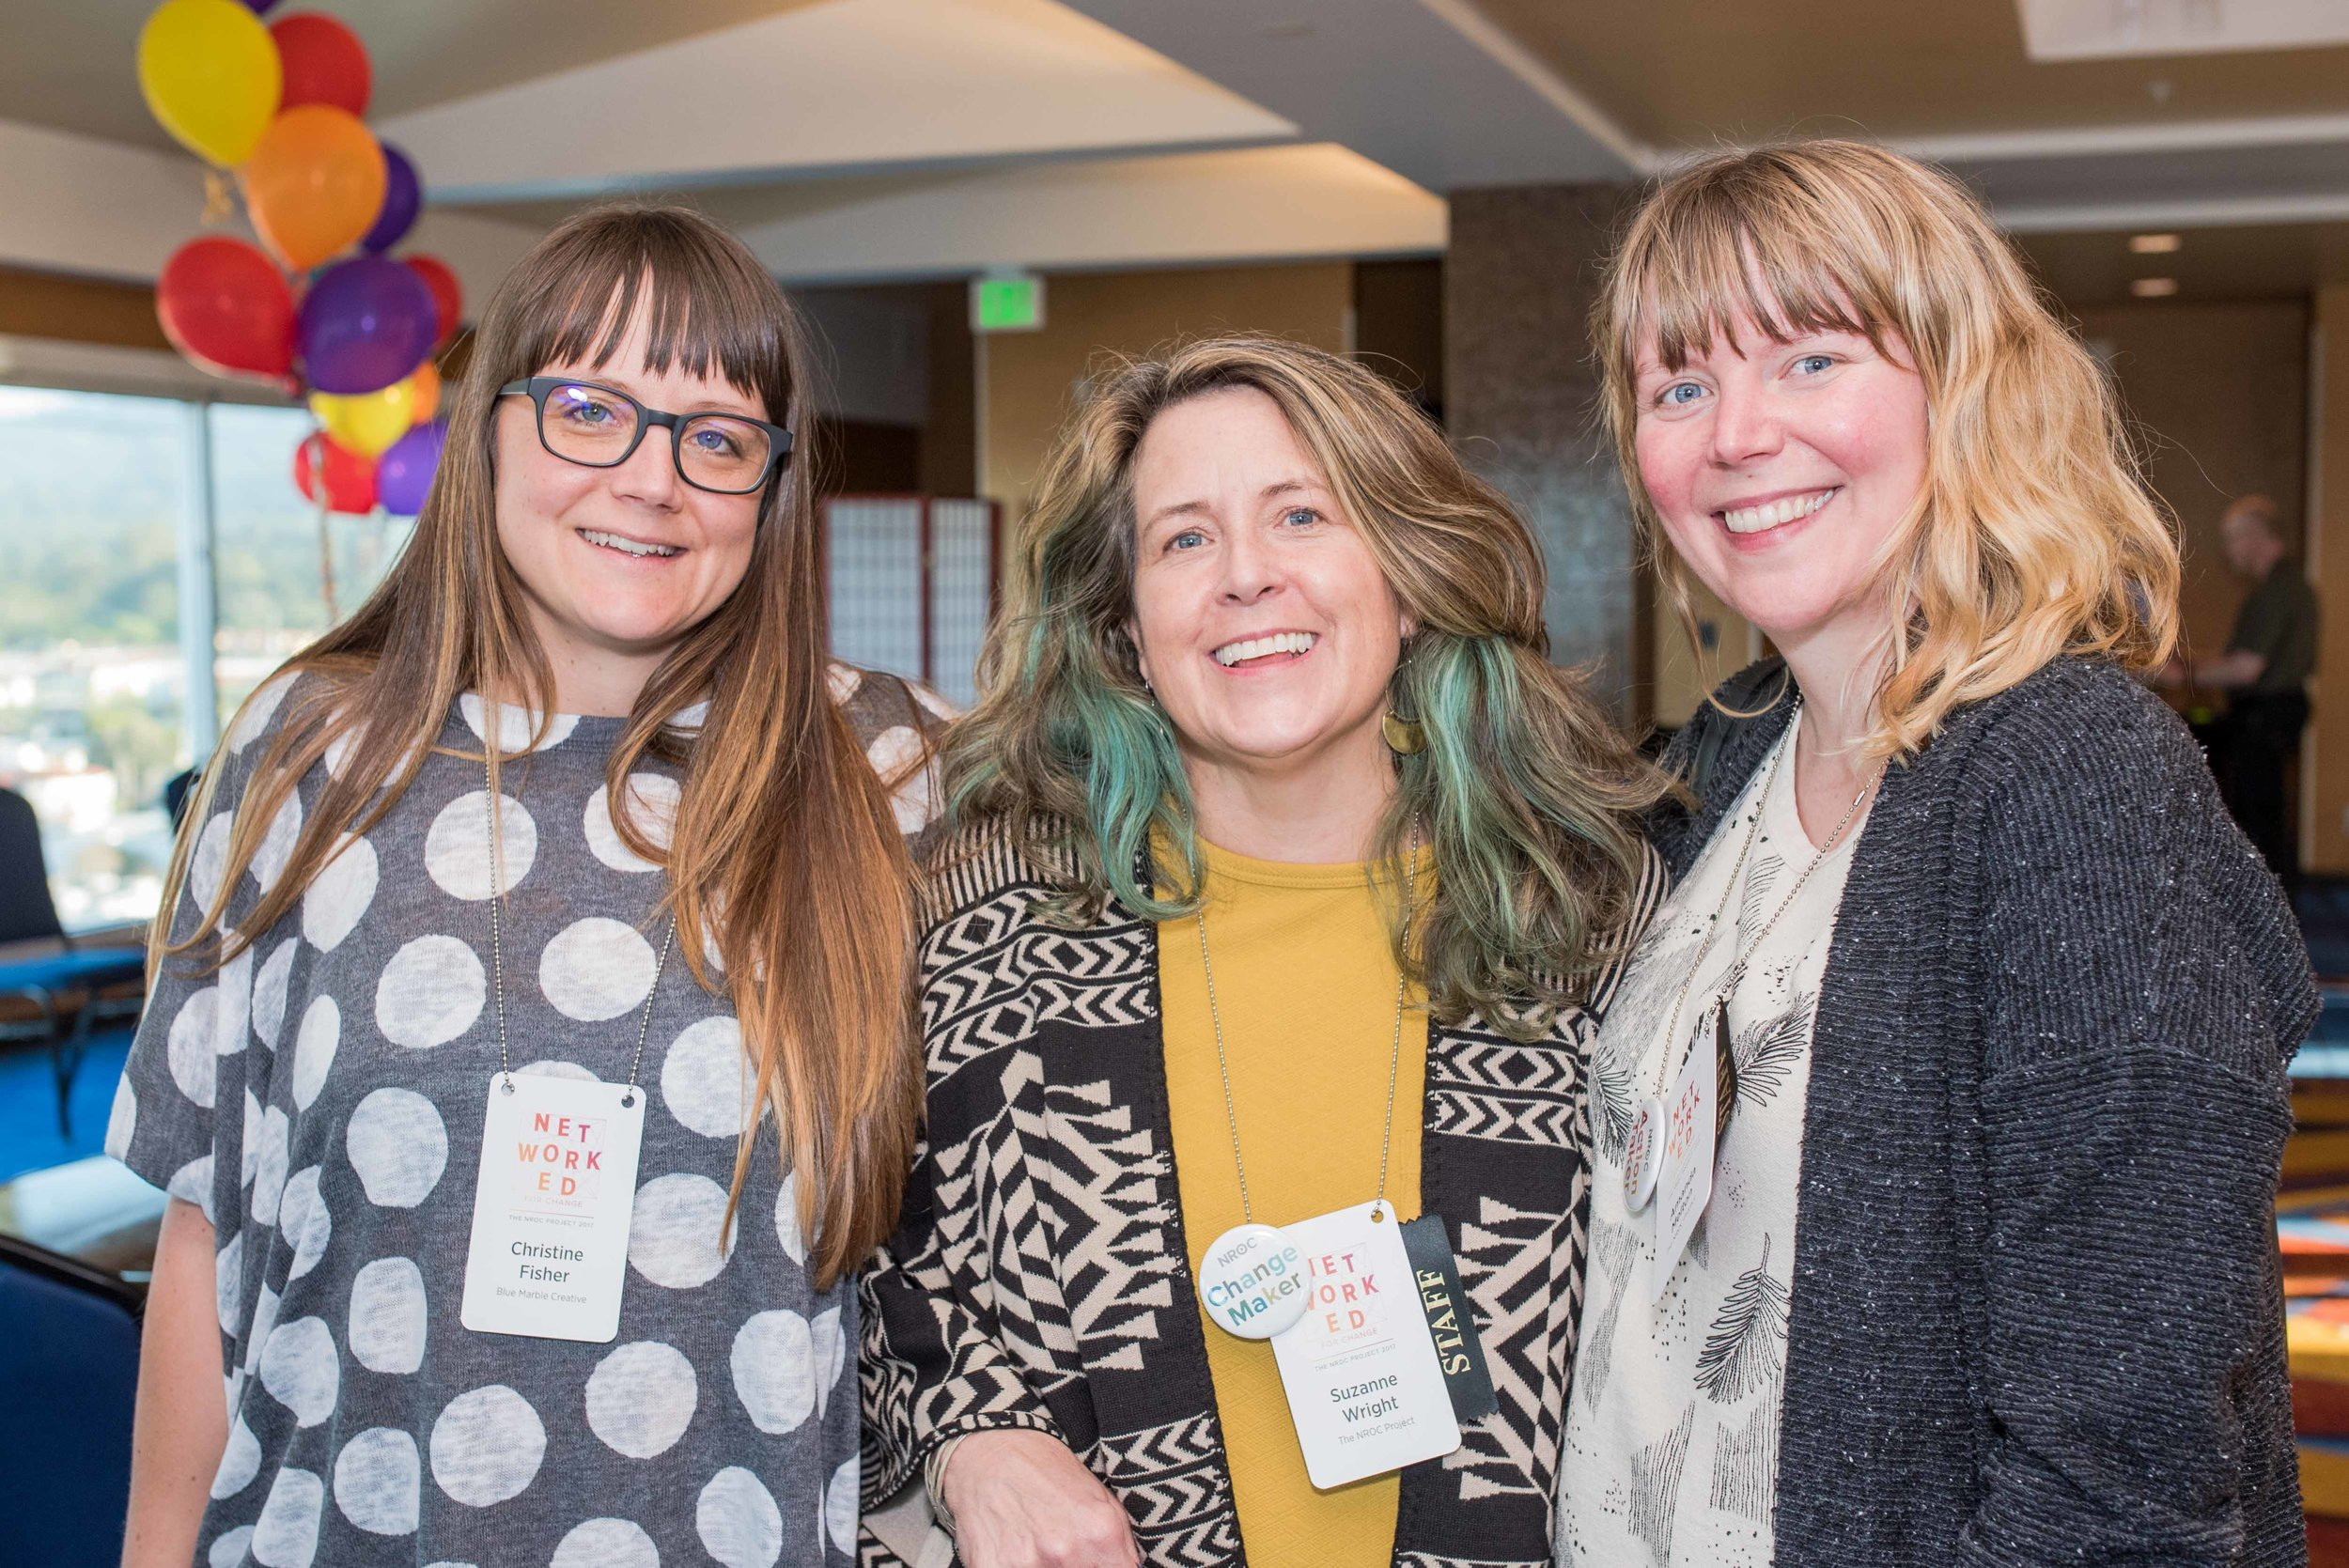 Blue Marble Creative Director, Christine Fisher and NROC Marketing Directors, Suzanne Wright Baumhaukl and Amanda Caple Melton